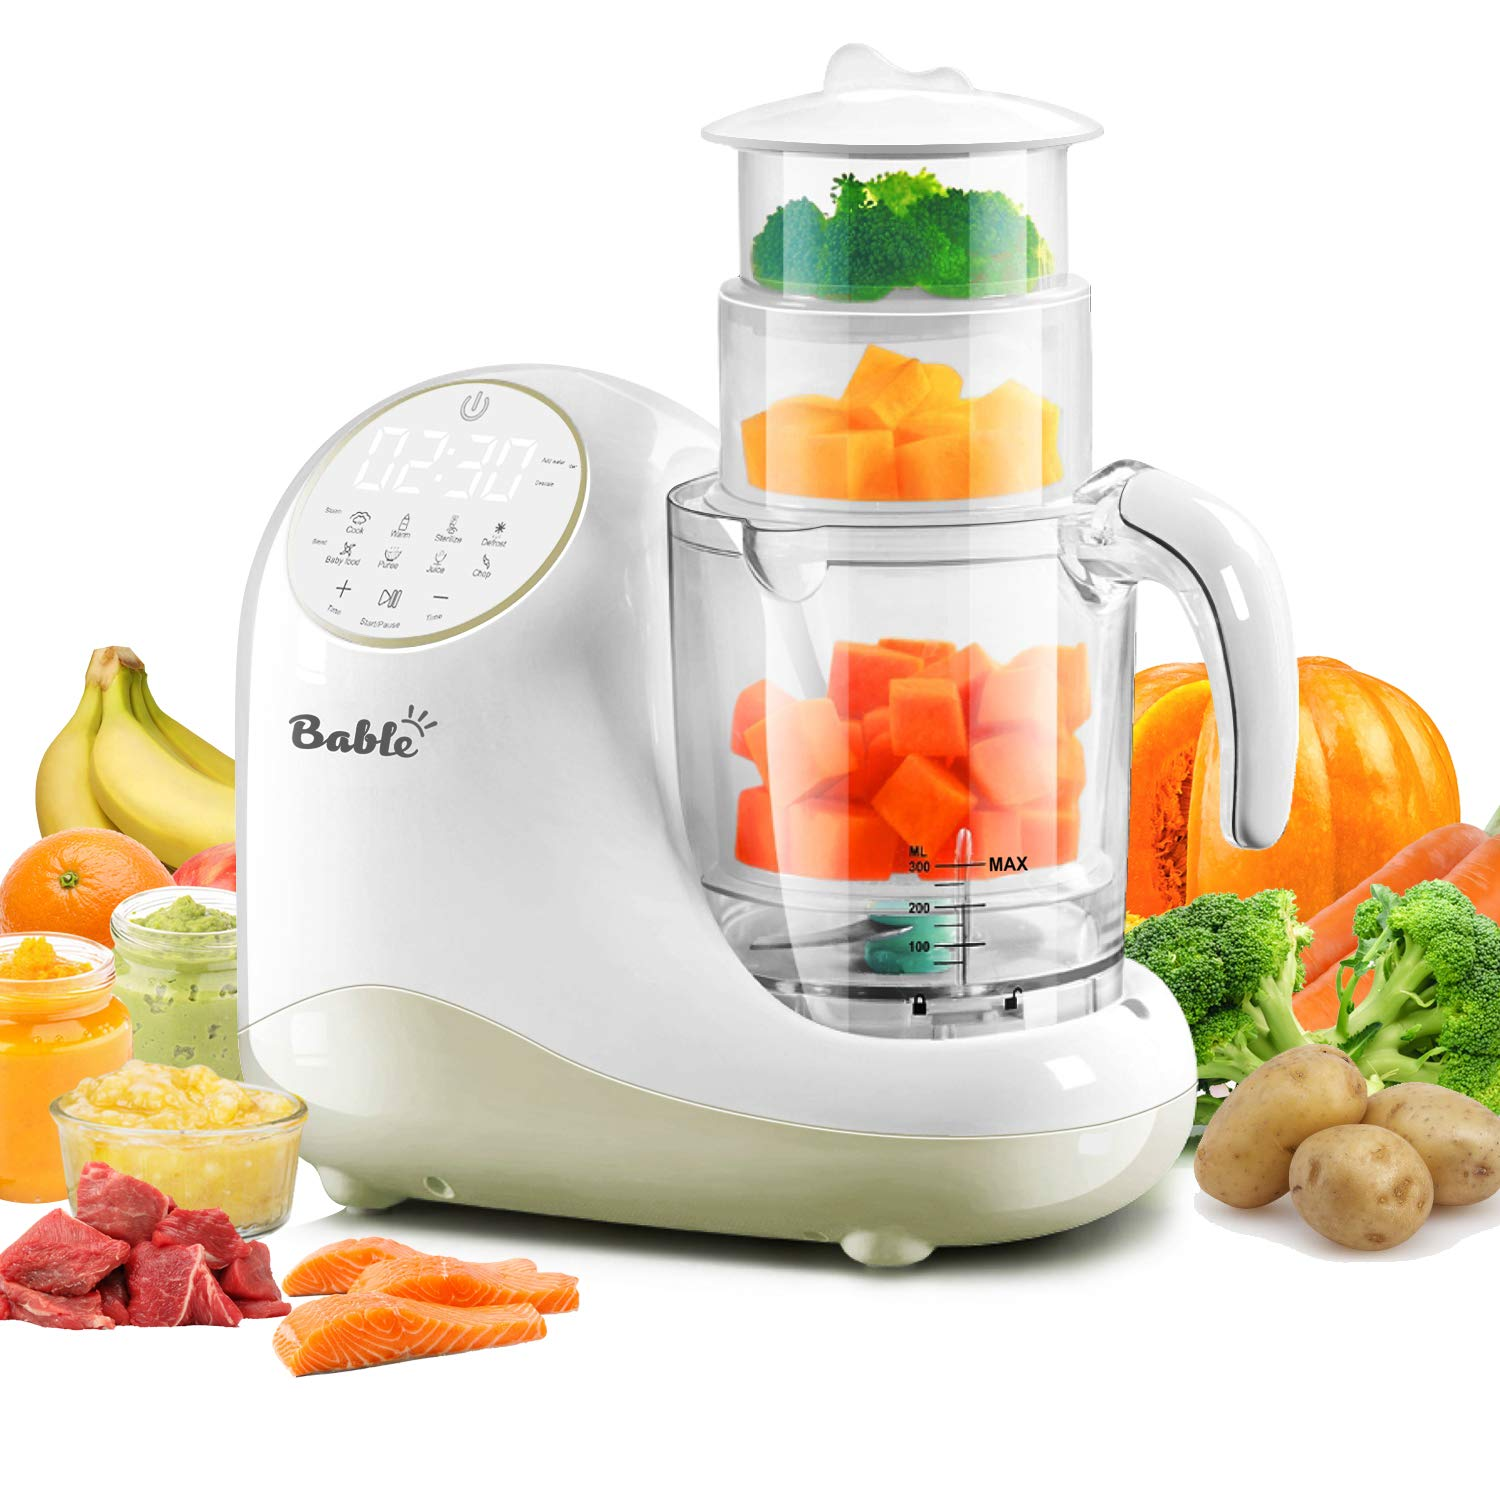 Bable Baby Food Maker for Infants and Toddlers, All in 1 Food Processor Mills Machine with Steam, Blend, Chop, Disinfect, Reheater, Grinder and Auto Cleaning, Touch Control Panel